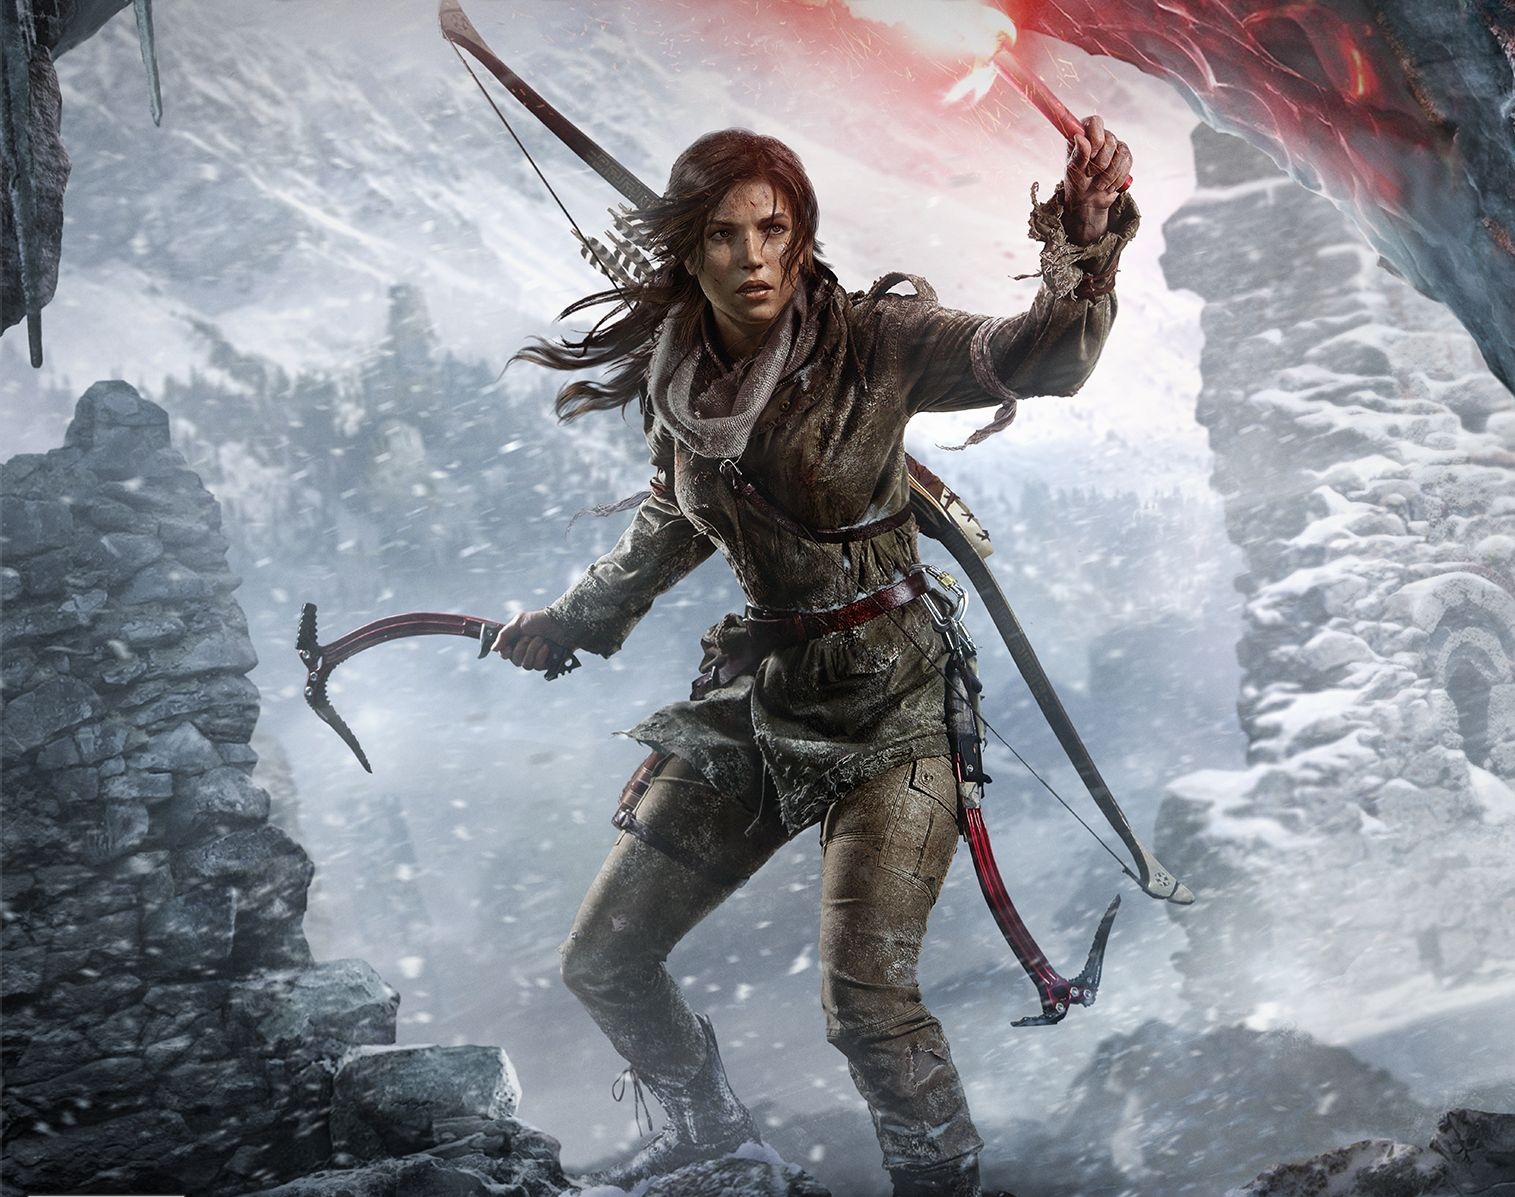 Rise Of The Tomb Raider - PS4 owners will have to wait an extra year